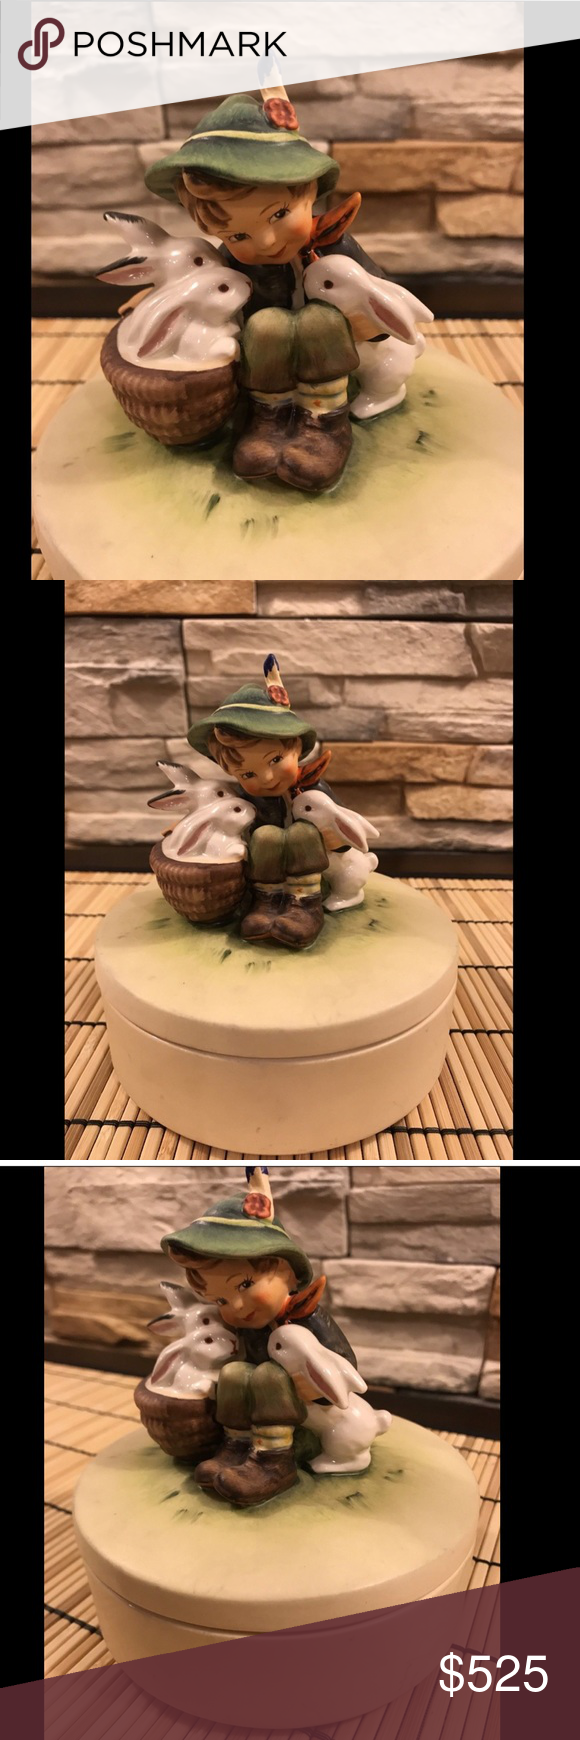 Hummel Rare Candy Box Figurine This is a genuine M.I